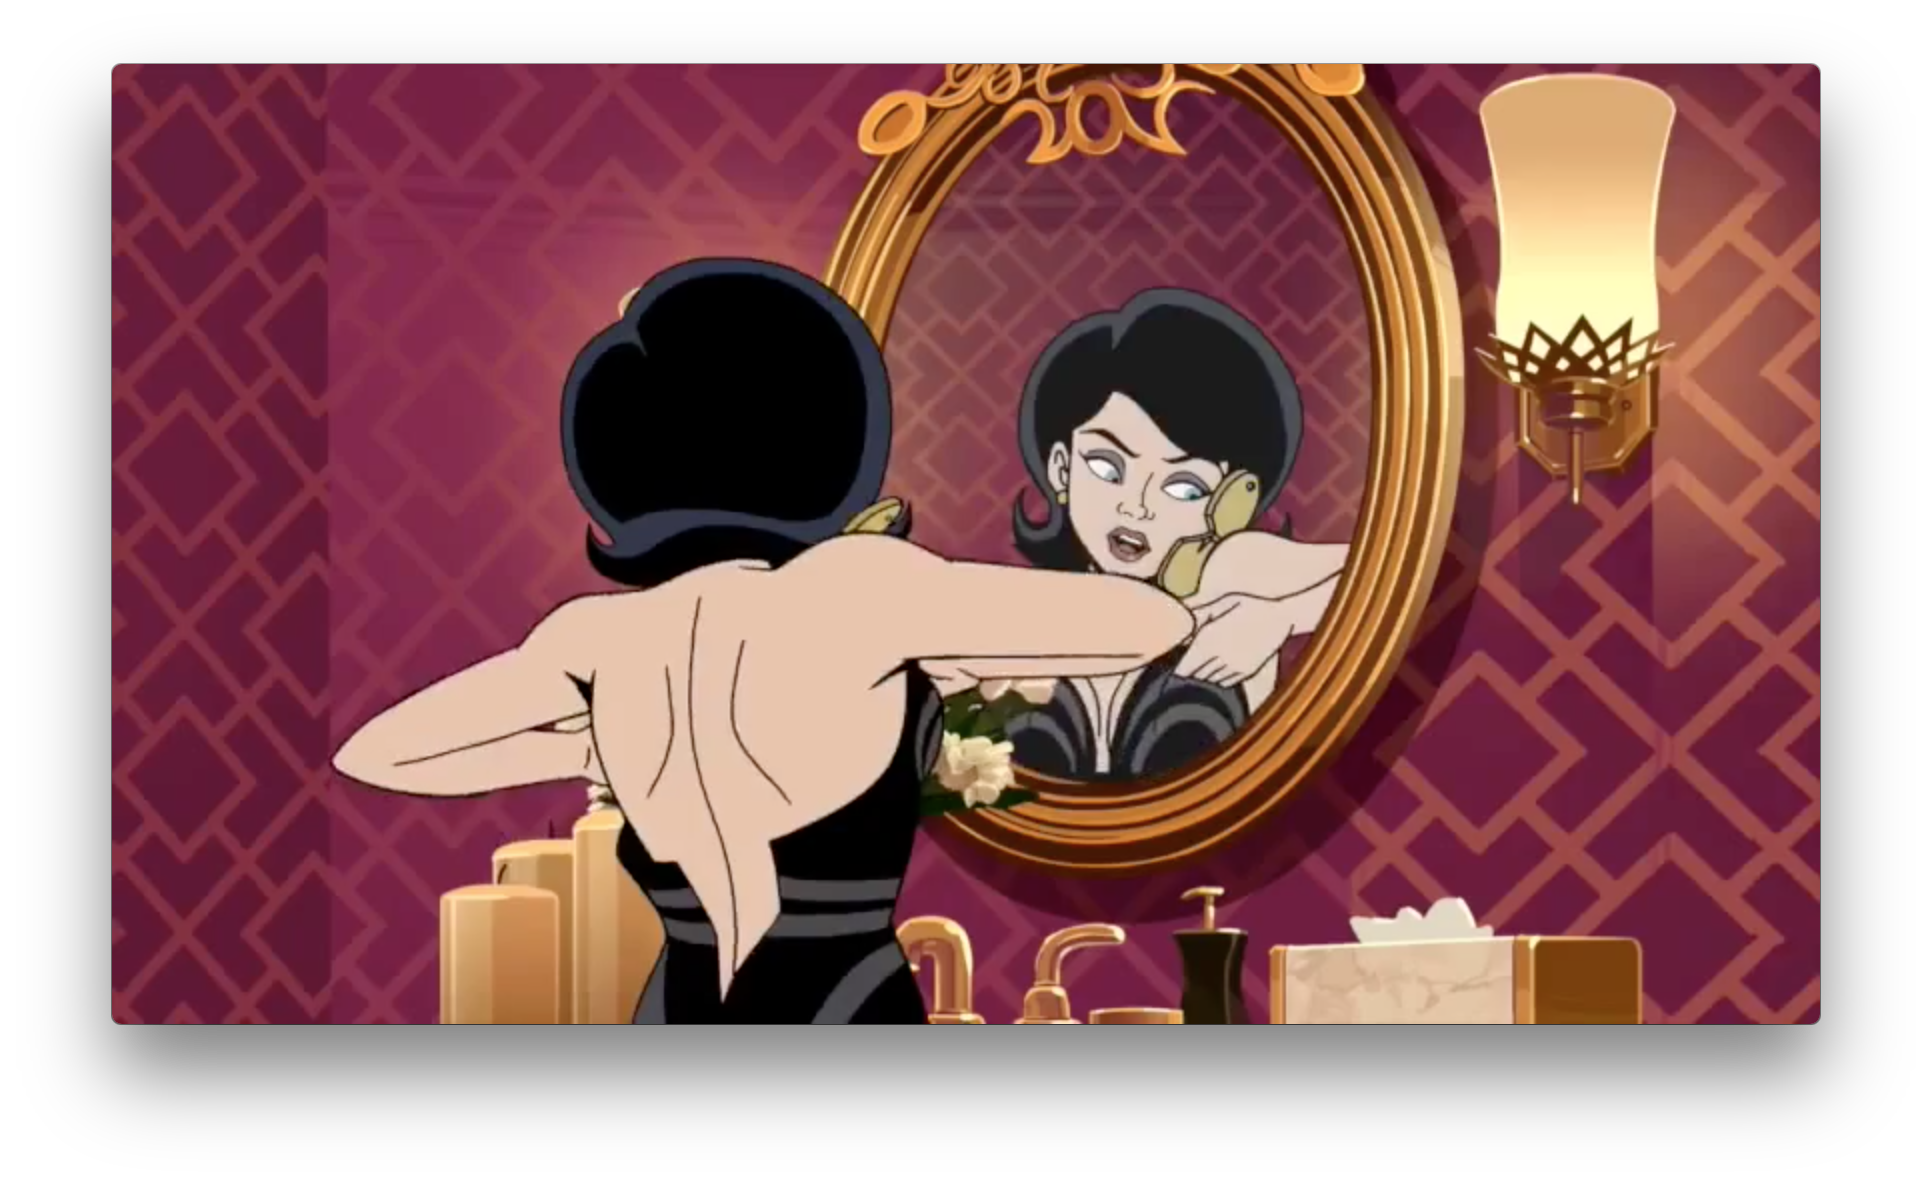 Frankly, I'm getting kind of sick of these fan-service-y shots of Dr. Mrs. The Monarch, especially in the season trailers. She's one of the most capable characters in the whole Venture universe. She doesn't always need to be dressing or undressing in the show's ads. But this does show she's getting ready for some fancy outing, in a fancy new dress, in a fancy place. So it seems she's doing well, likely with the Guild's help.